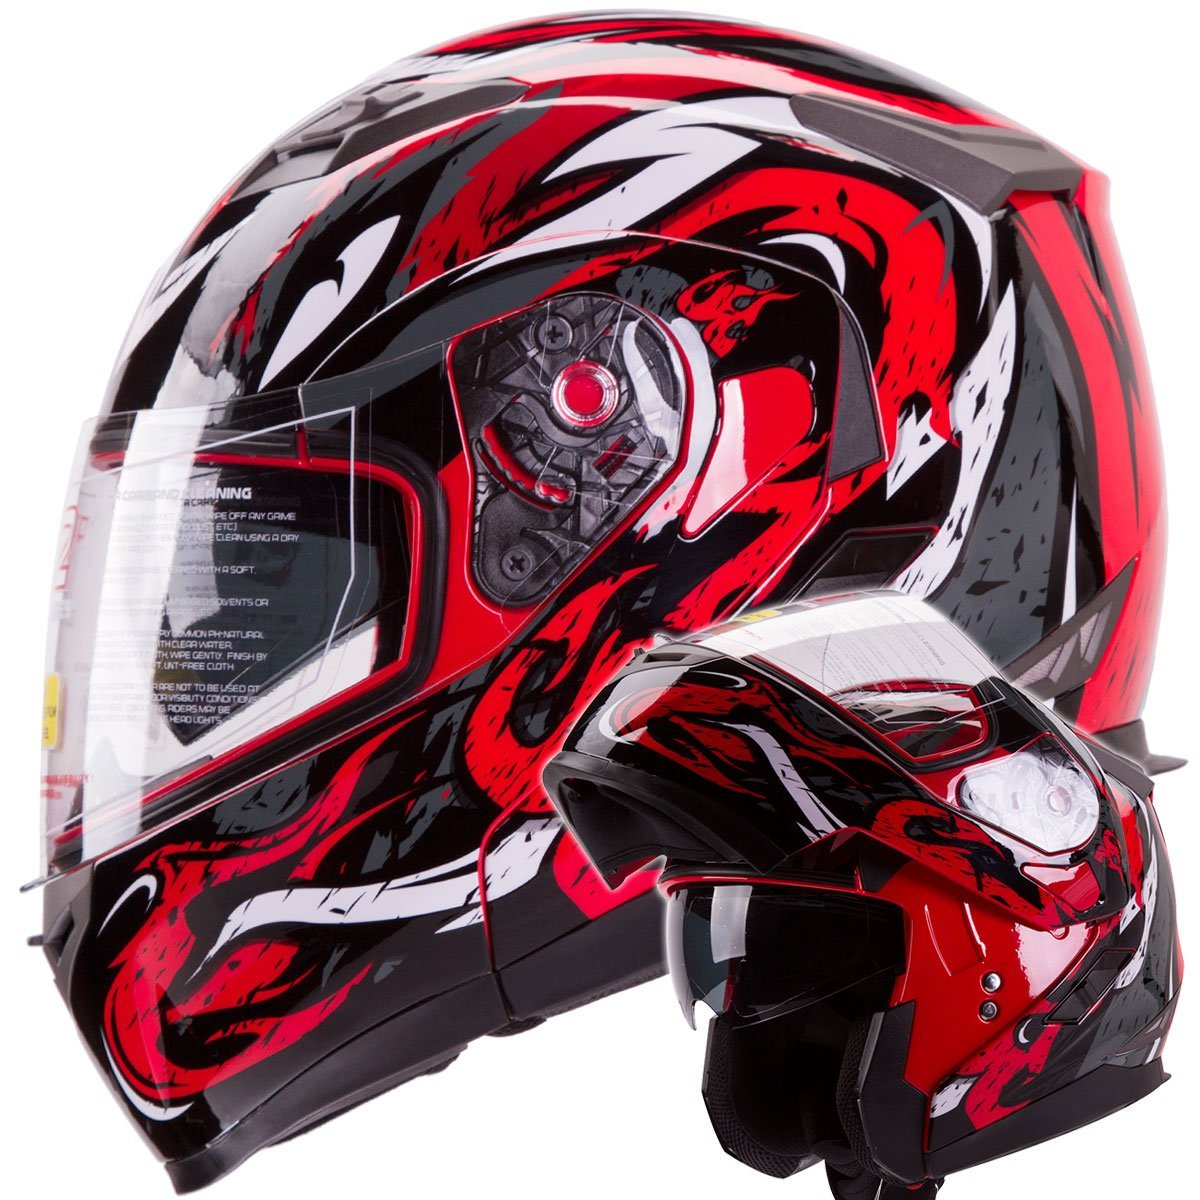 VIPER Modular Dual Visor Motorcycle / Snowmobile Helmet DOT Approved (IV2 Model #953) - RED (M)